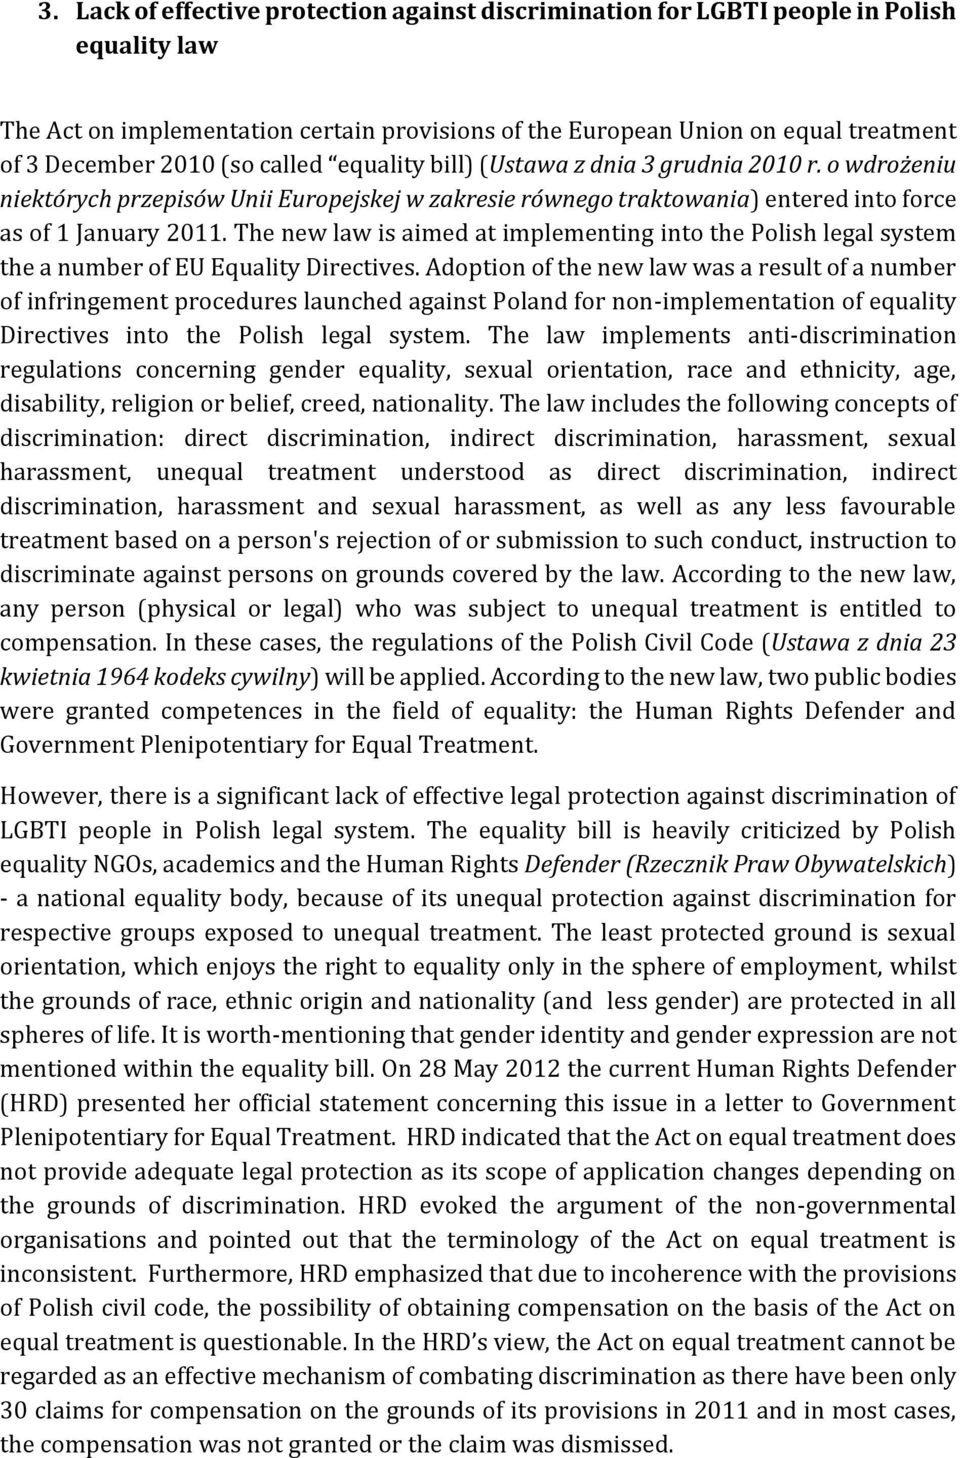 The new law is aimed at implementing into the Polish legal system the a number of EU Equality Directives.